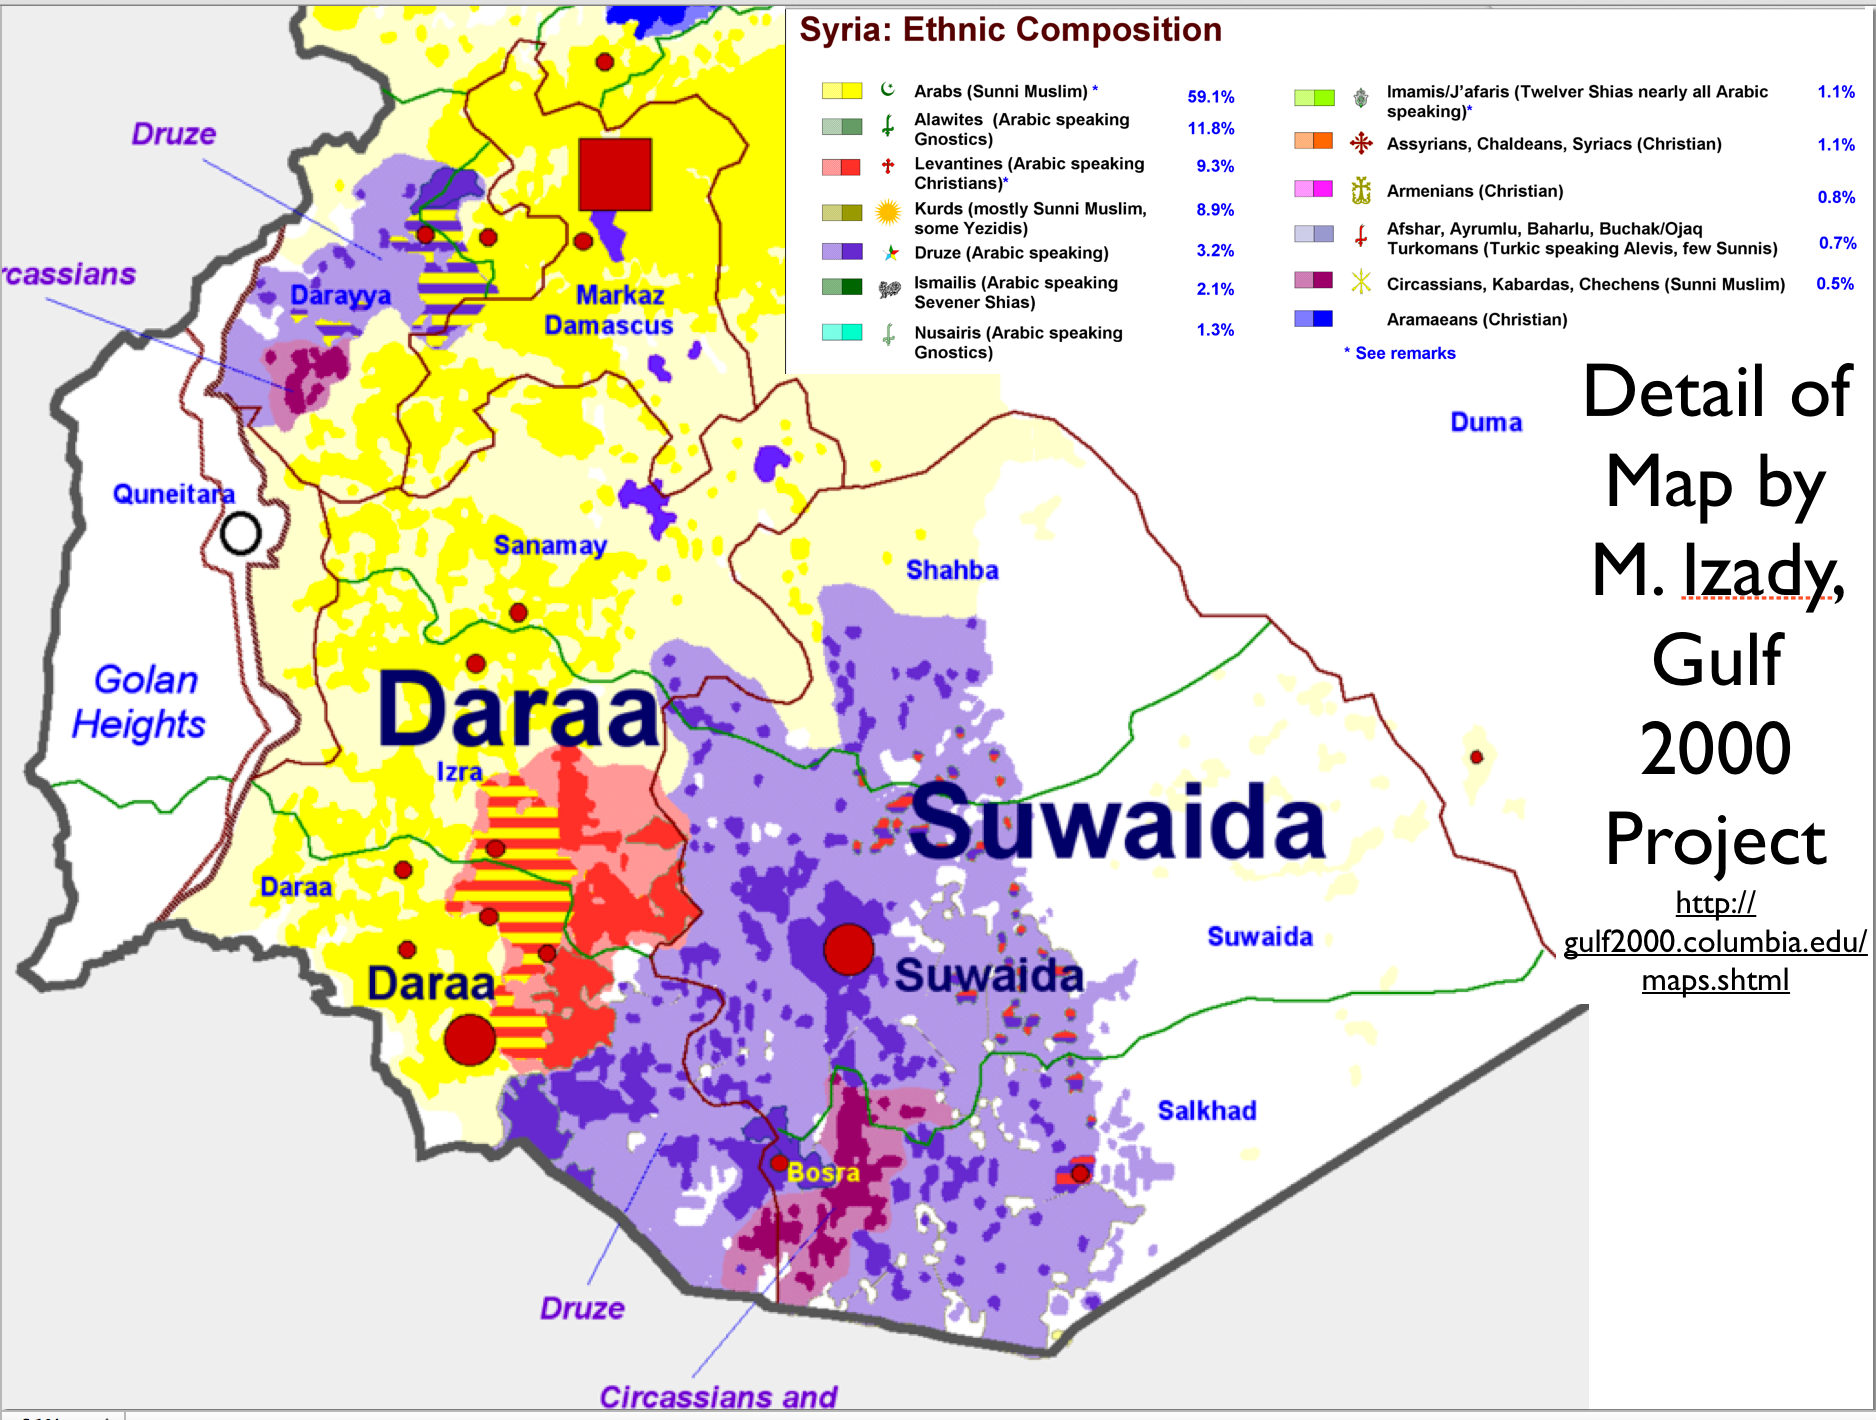 michael izady s amazingly detailed map of ethnicity in syria and syria ethnicity map detail 1